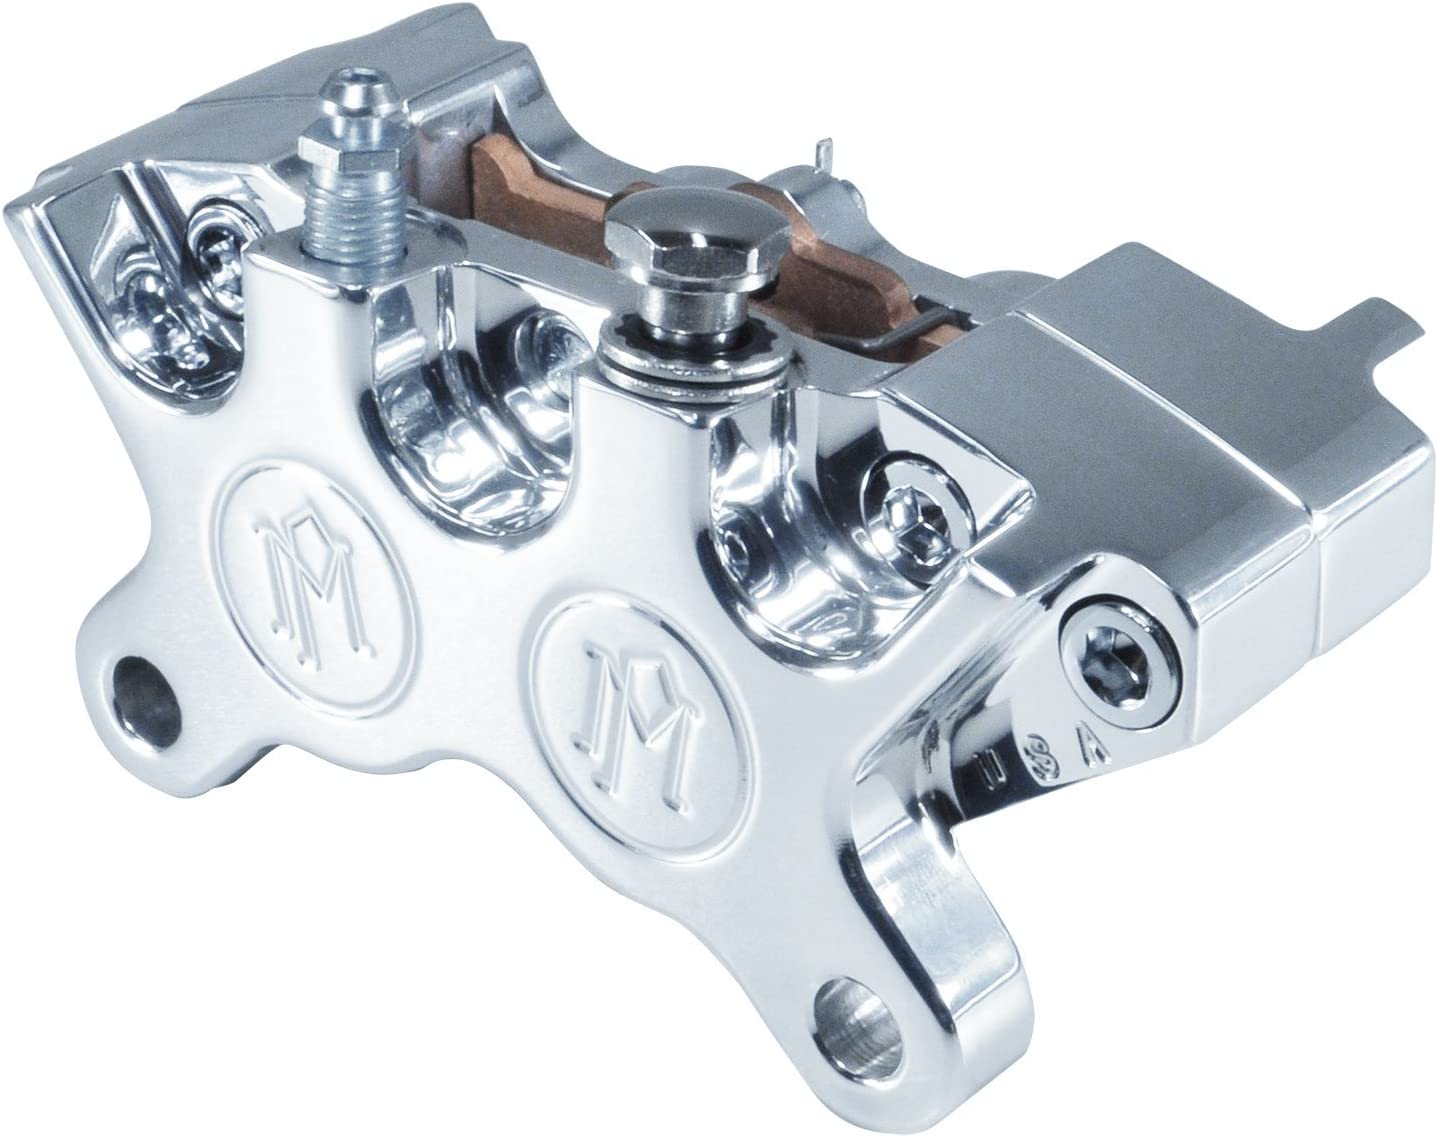 POLISHED Billet Aluminum Harley Chopper Bobber Cafe Racer MADE IN THE USA Performance Machine 4-Piston Brake Caliper WITH PADS